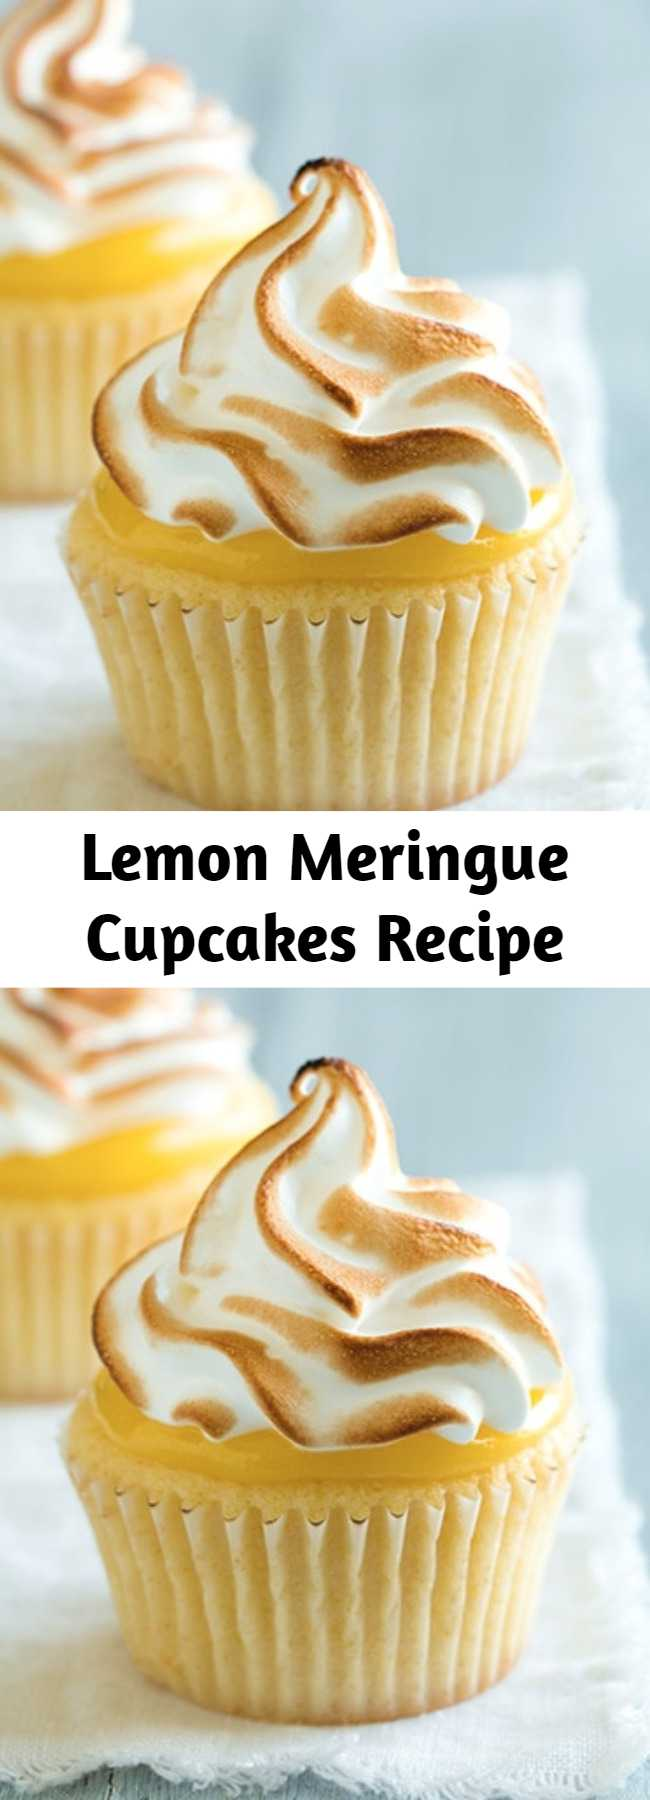 Lemon Meringue Cupcakes Recipe - Lemon meringue pie is such a classic dessert and every classic dessert must be created into a cupcake version right? You get a soft cupcake base, a bright creamy lemon curd, and it's finish with a light as air meringue topping.